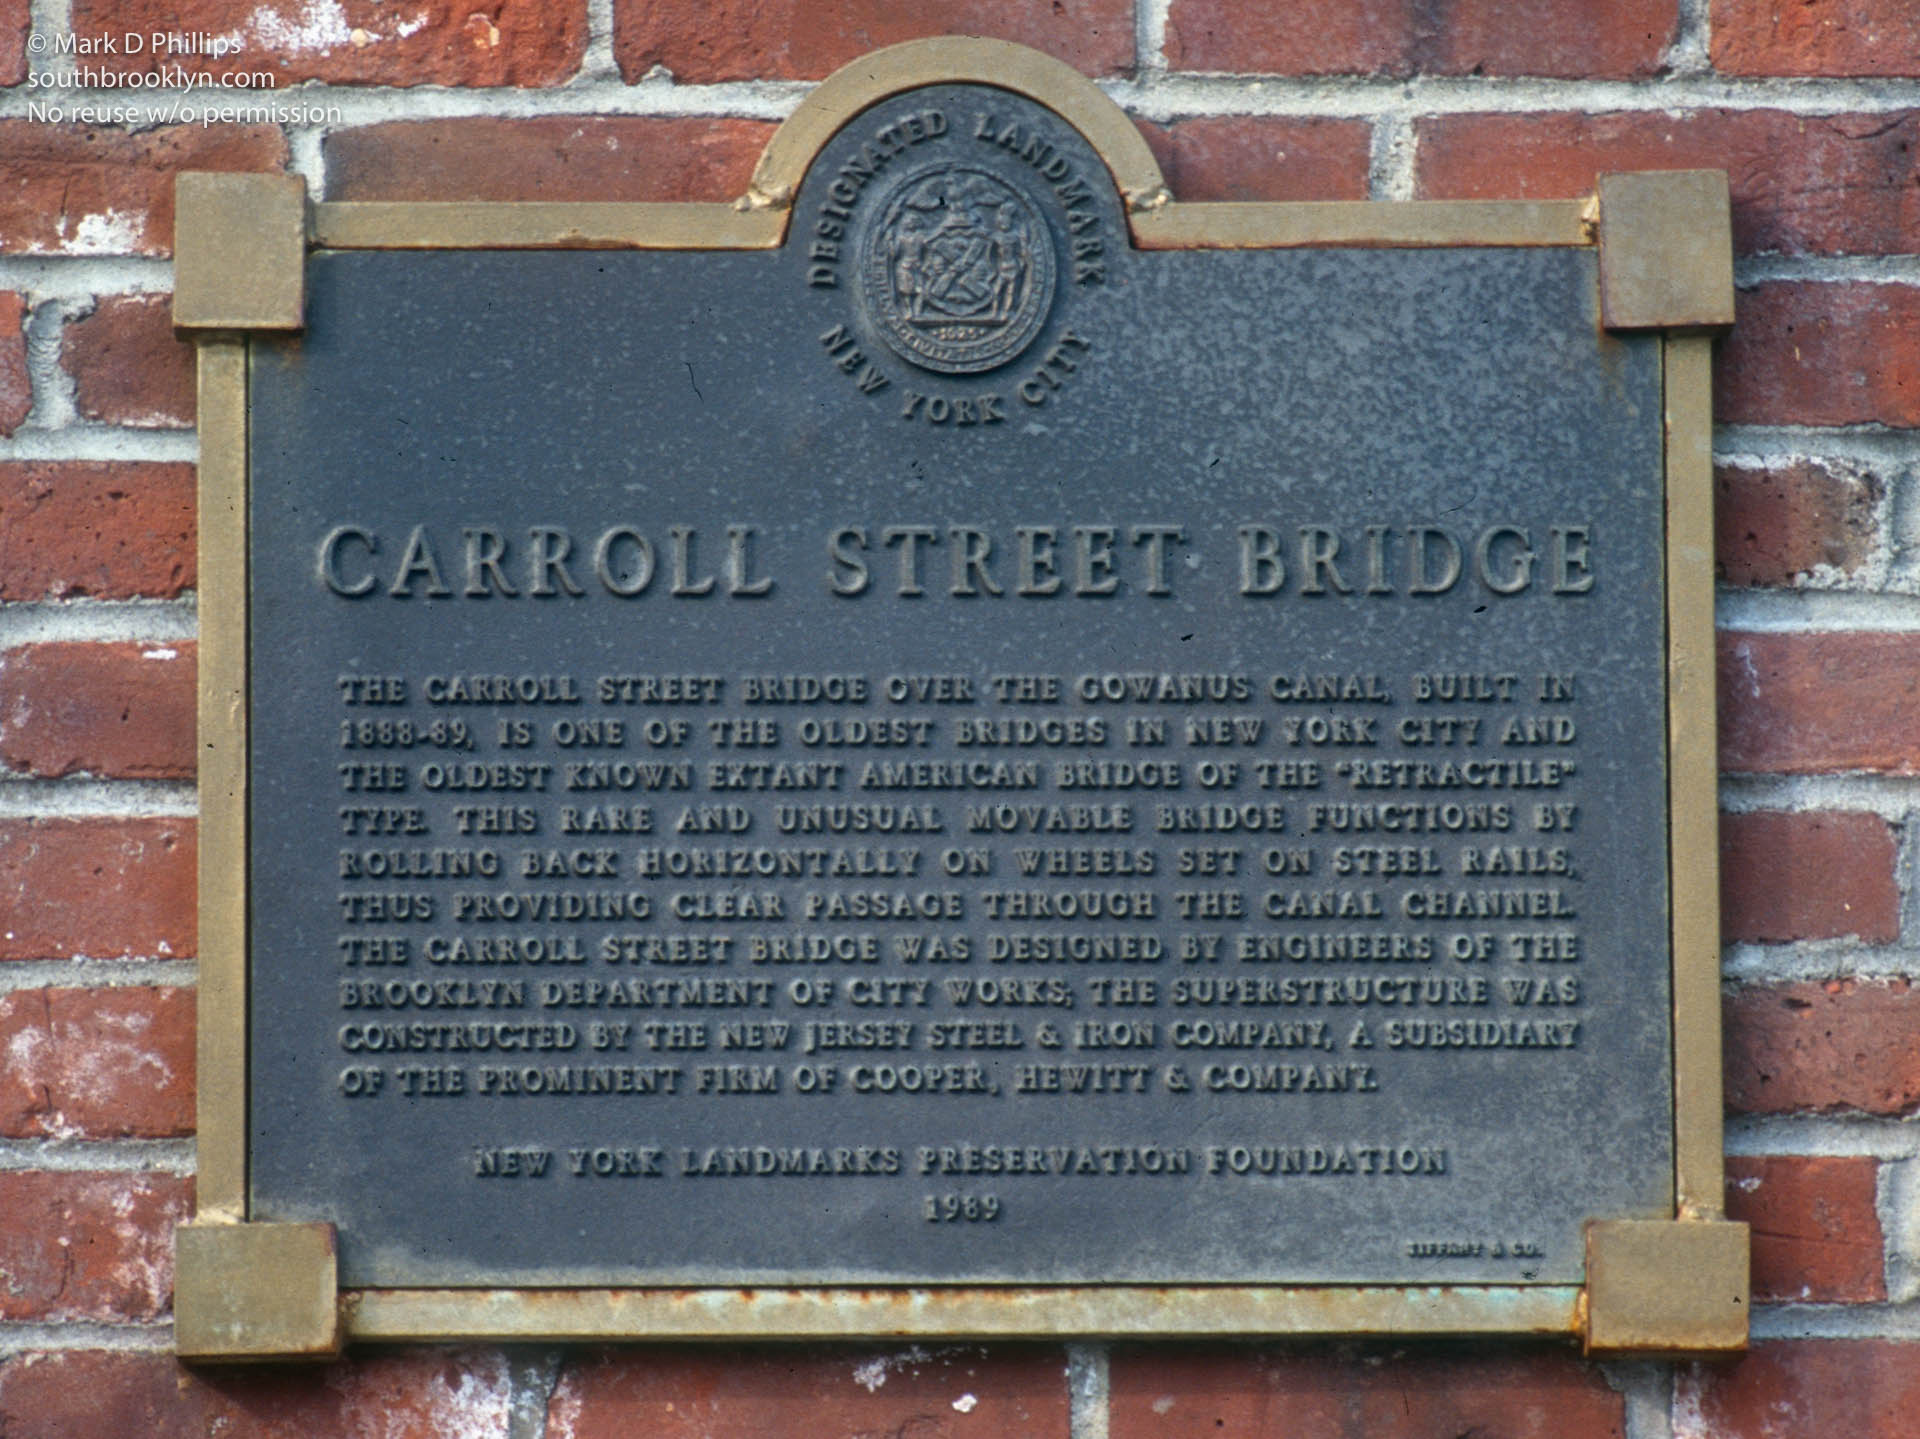 Carroll Street Bridge over the Gowanus Canal historical marker